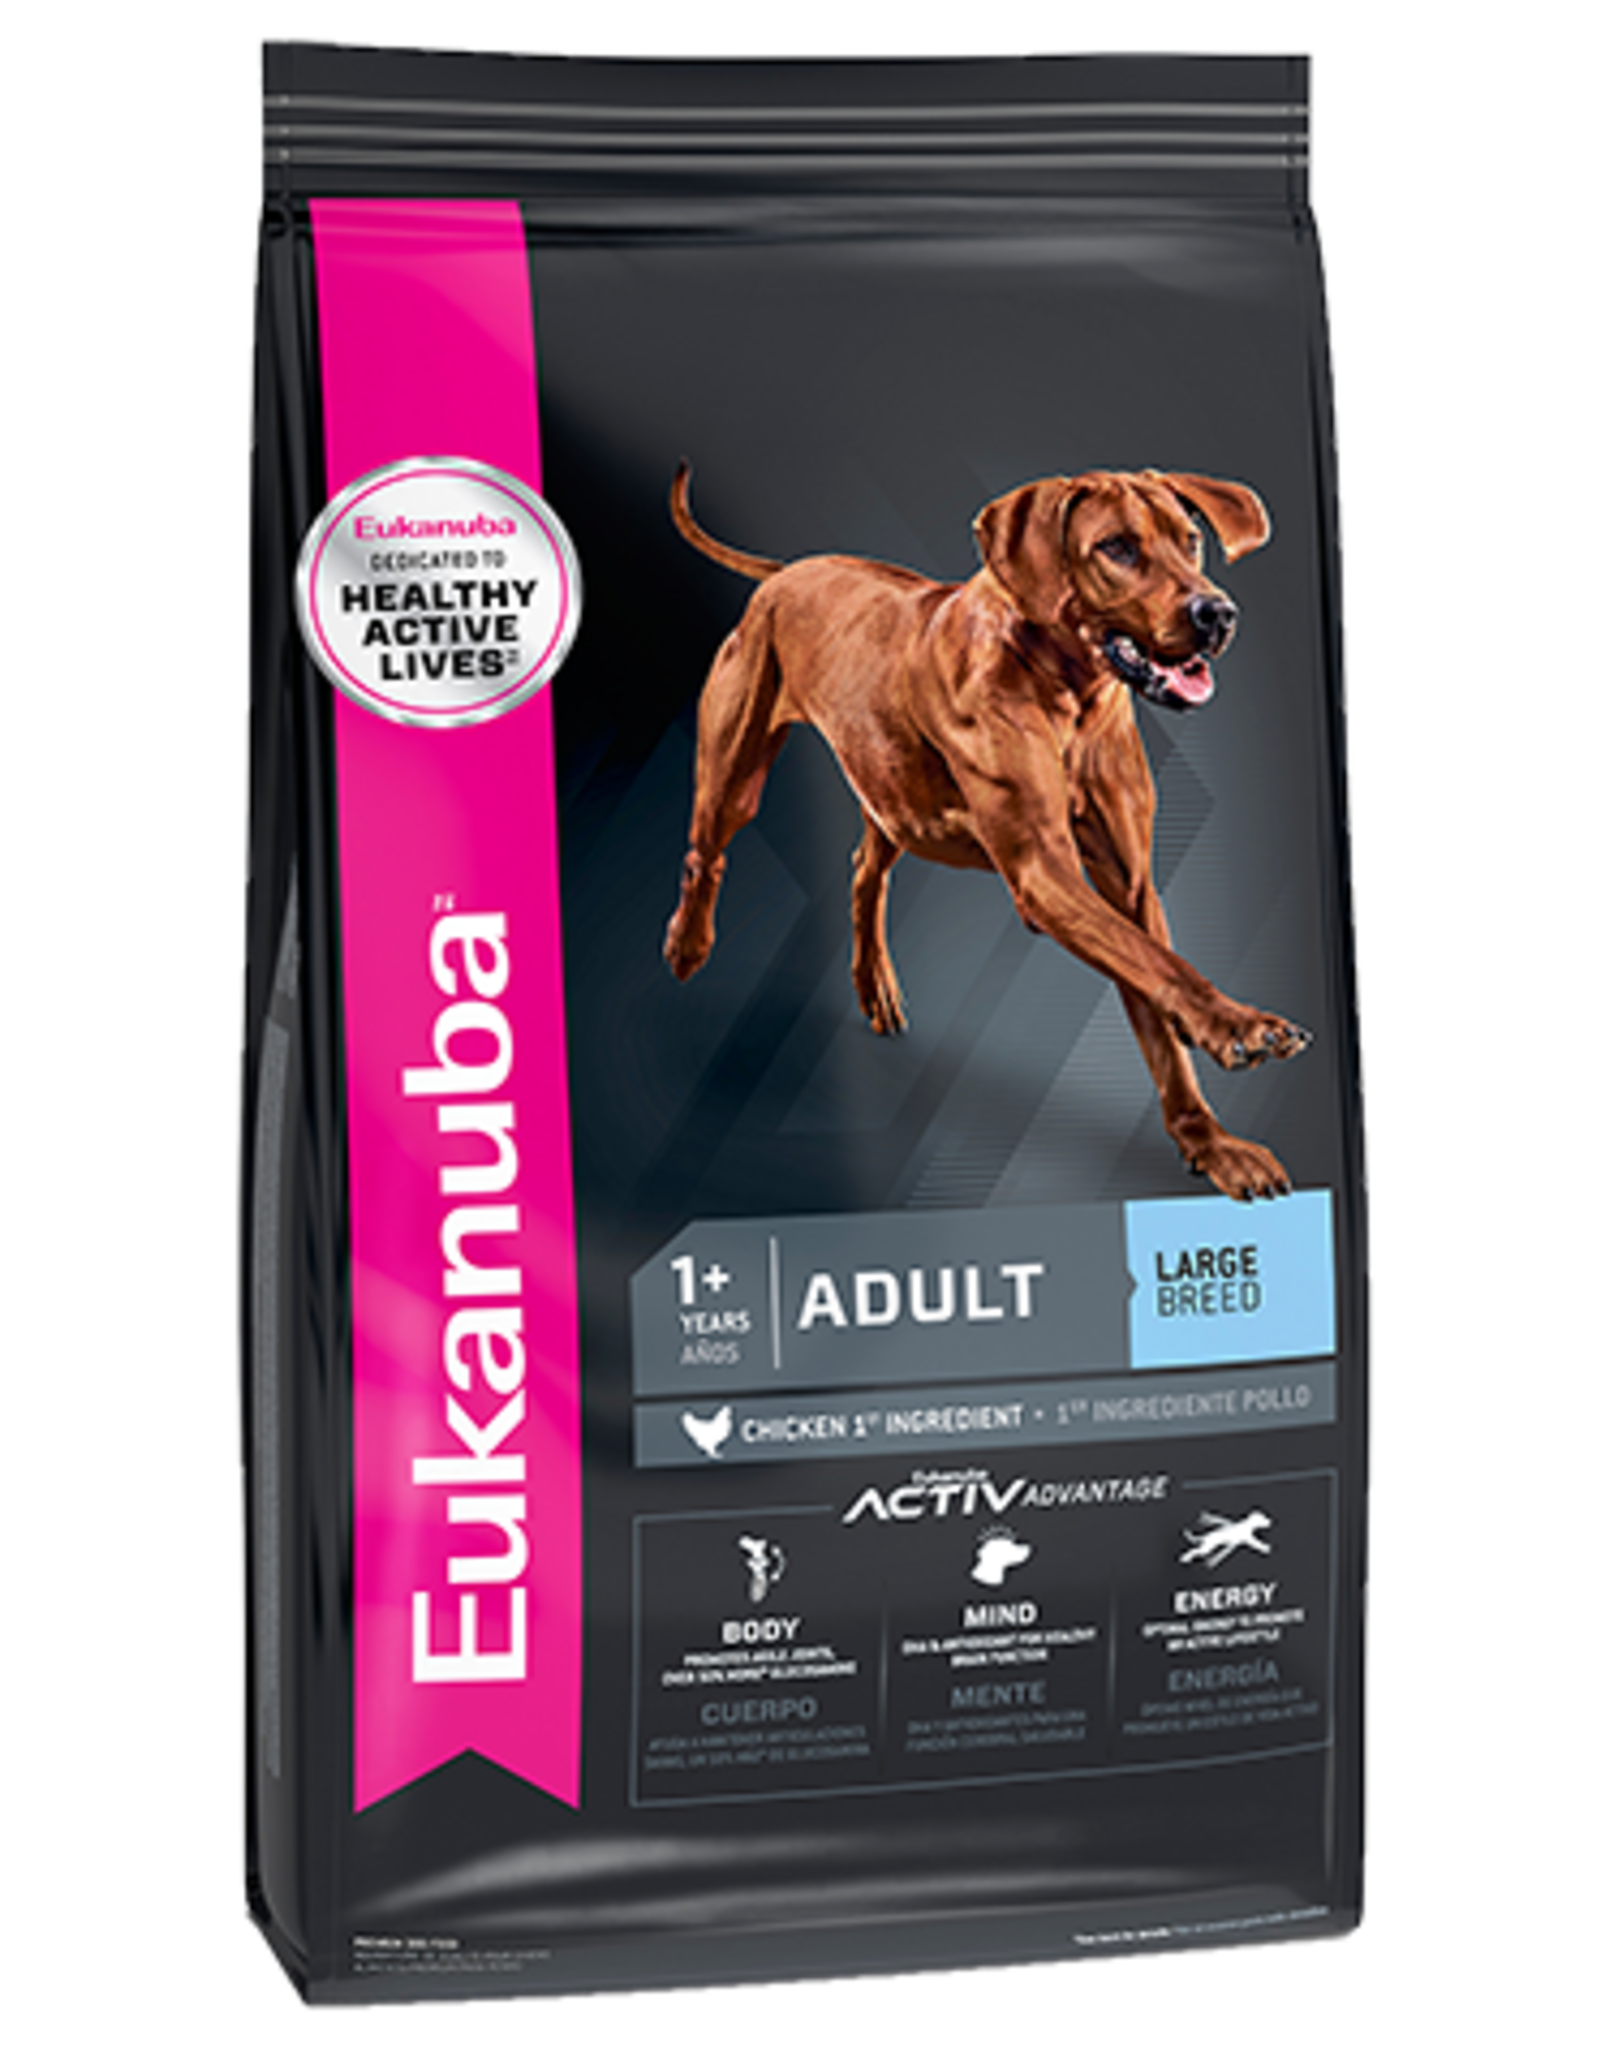 EUKANUBA EUKANUBA LARGE BREED ADULT 33LBS